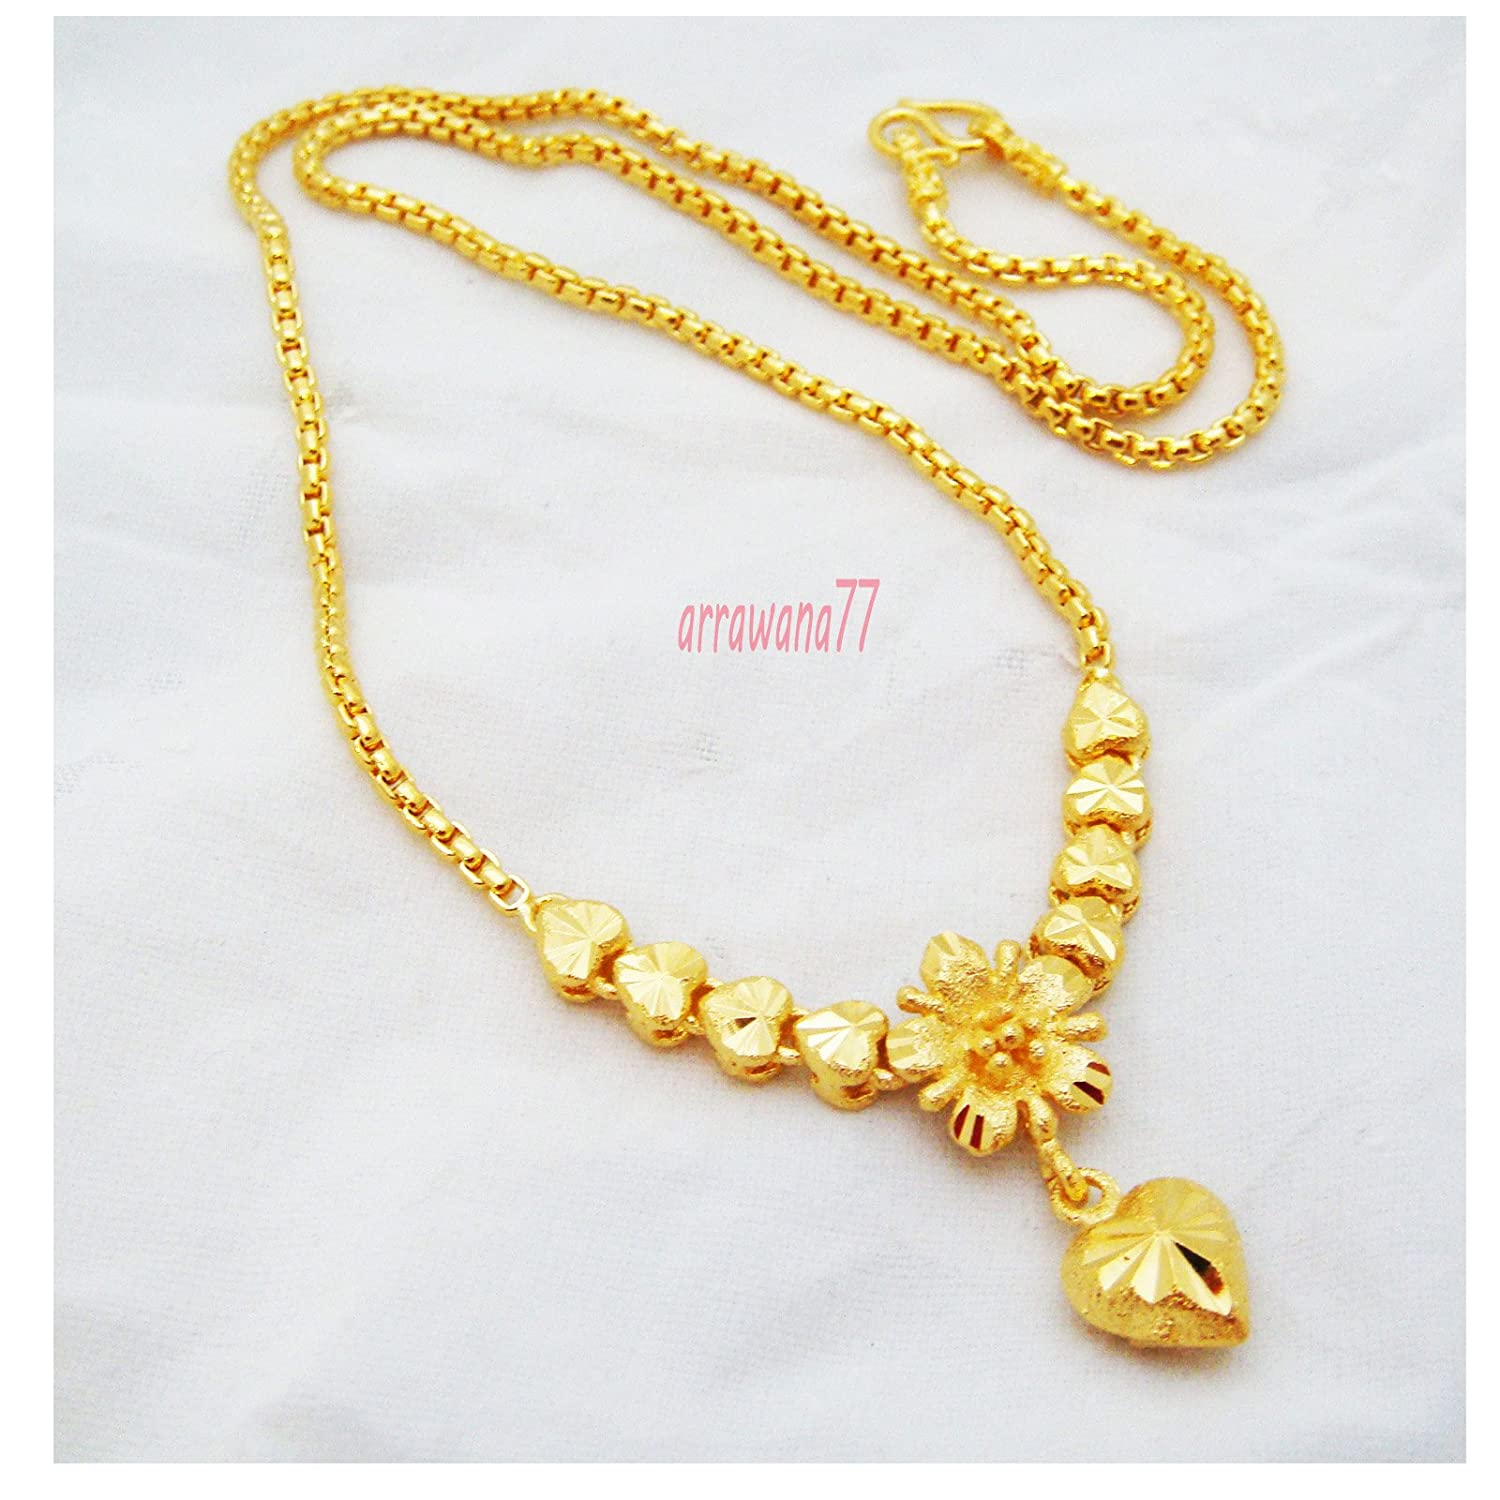 Amazoncom Flower 24k Thai Baht Yellow Gold Plated Filled Necklace